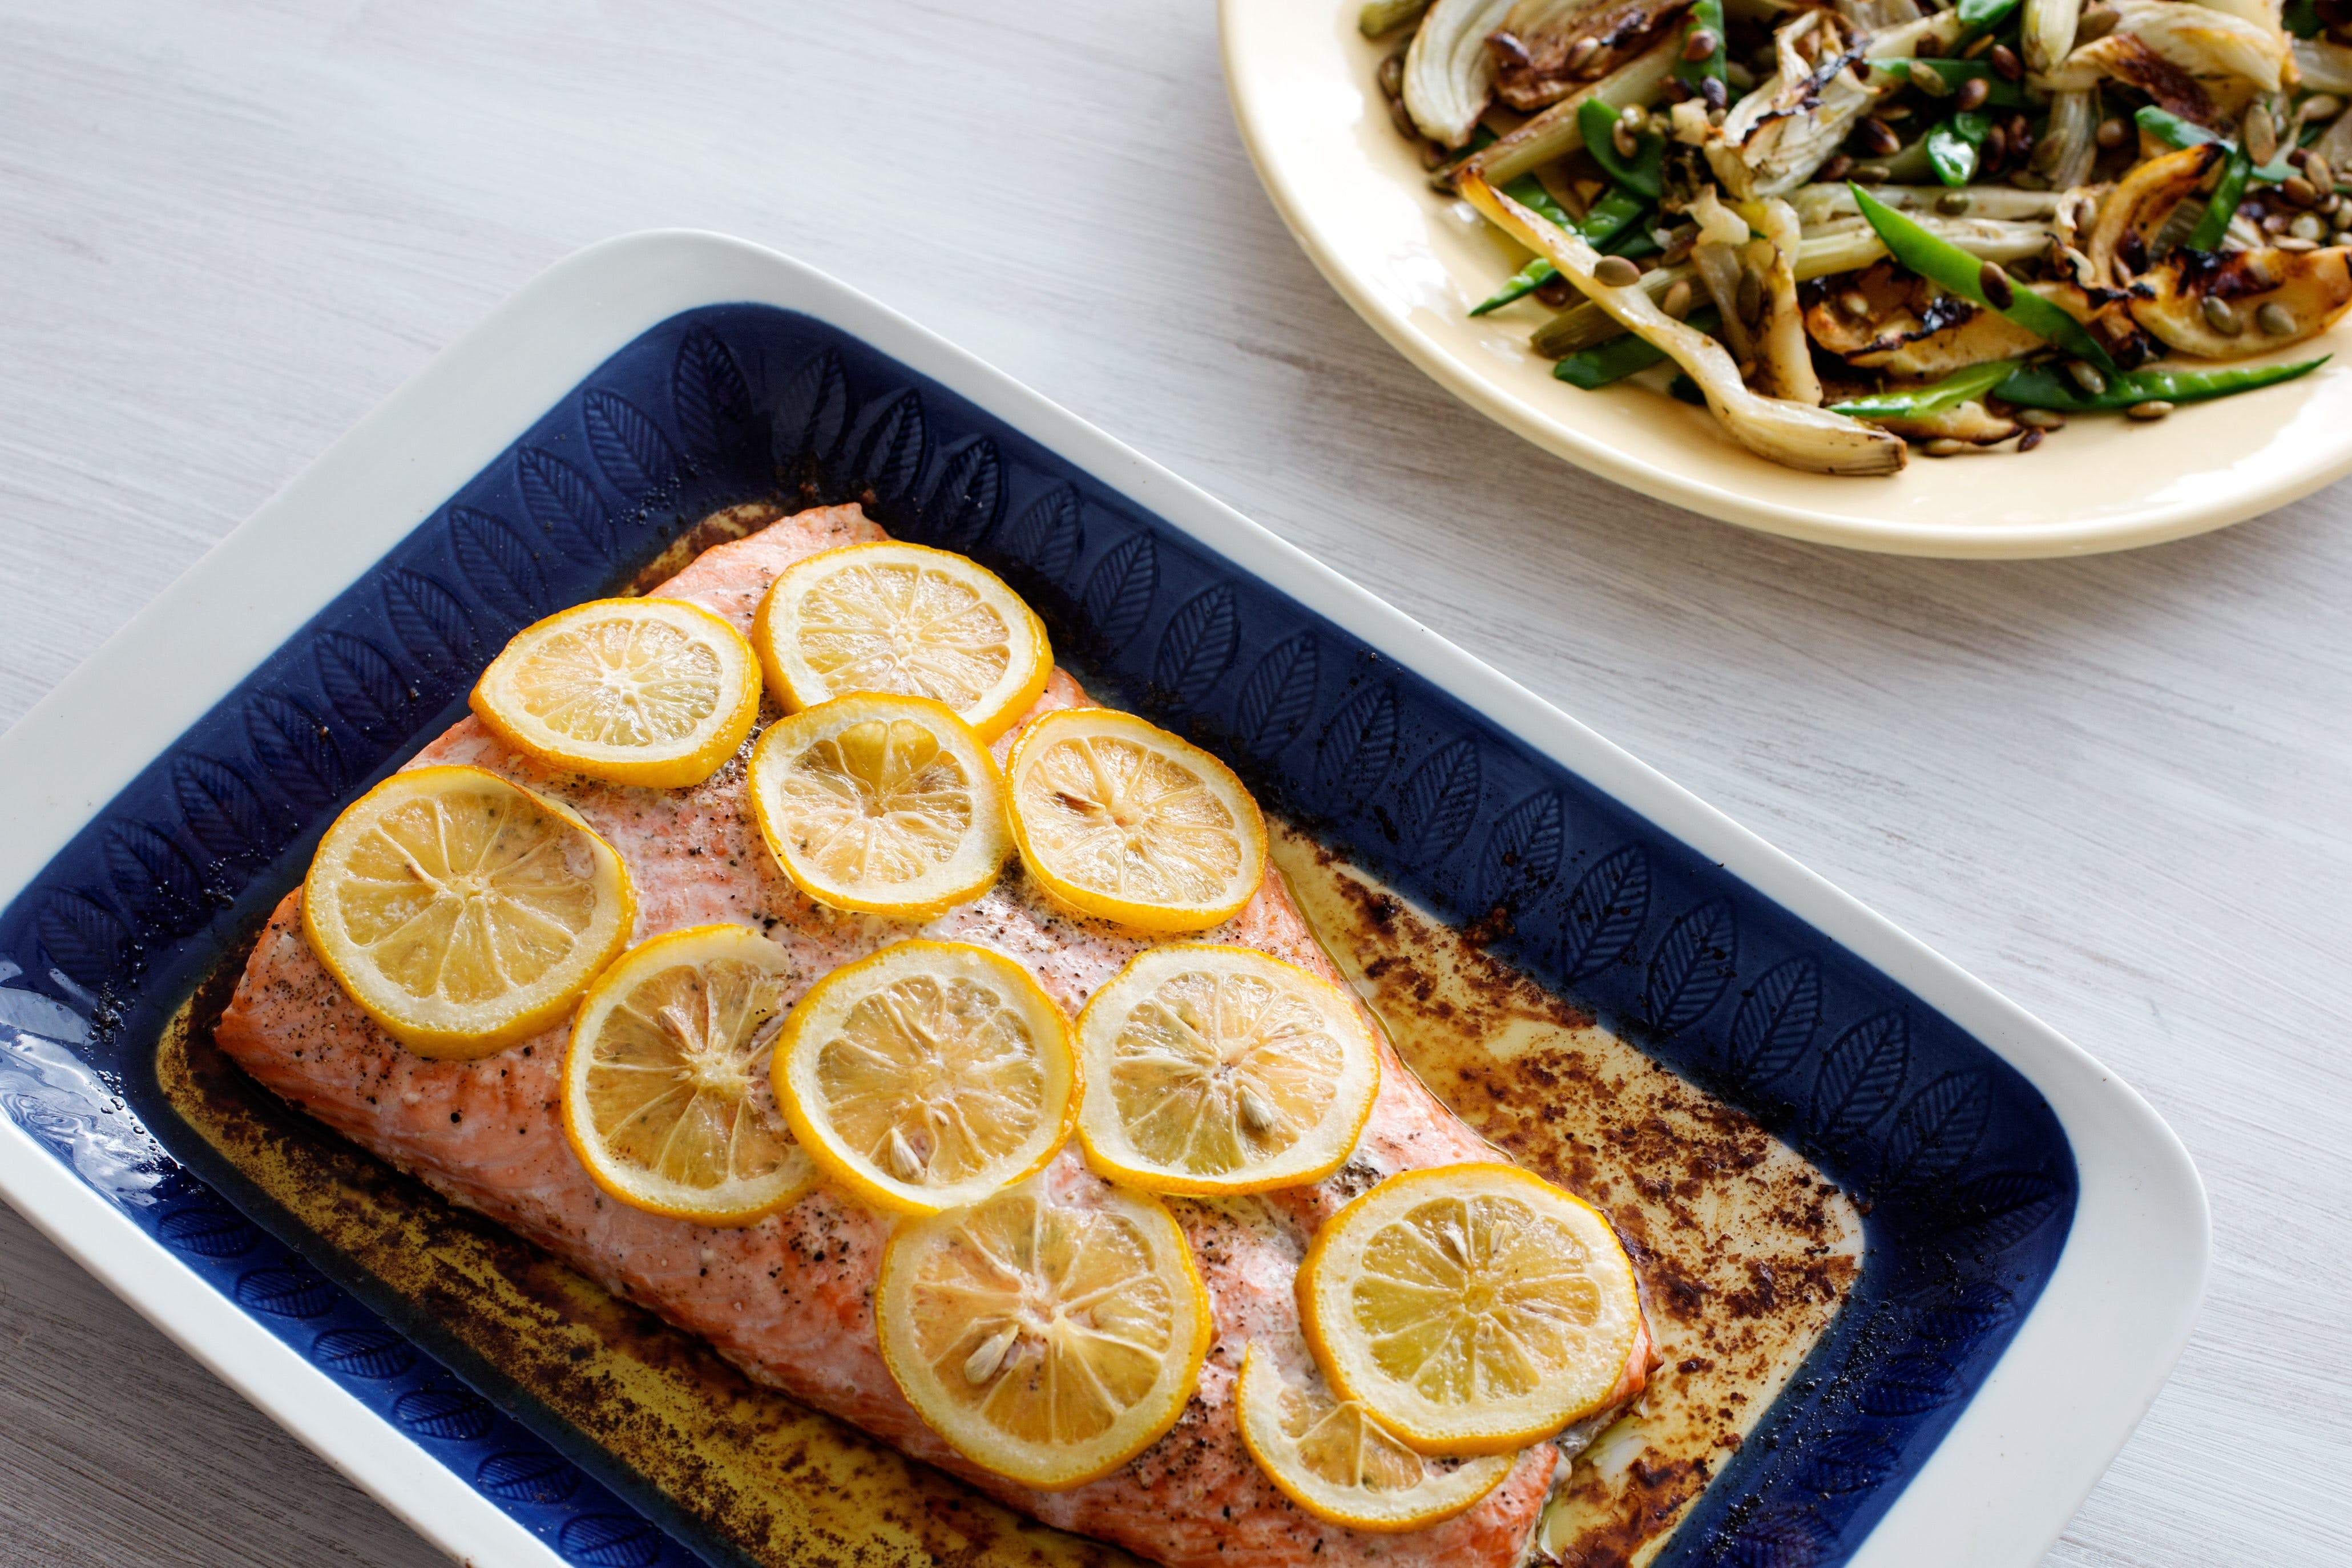 Baked Salmon with Lemon and Butter